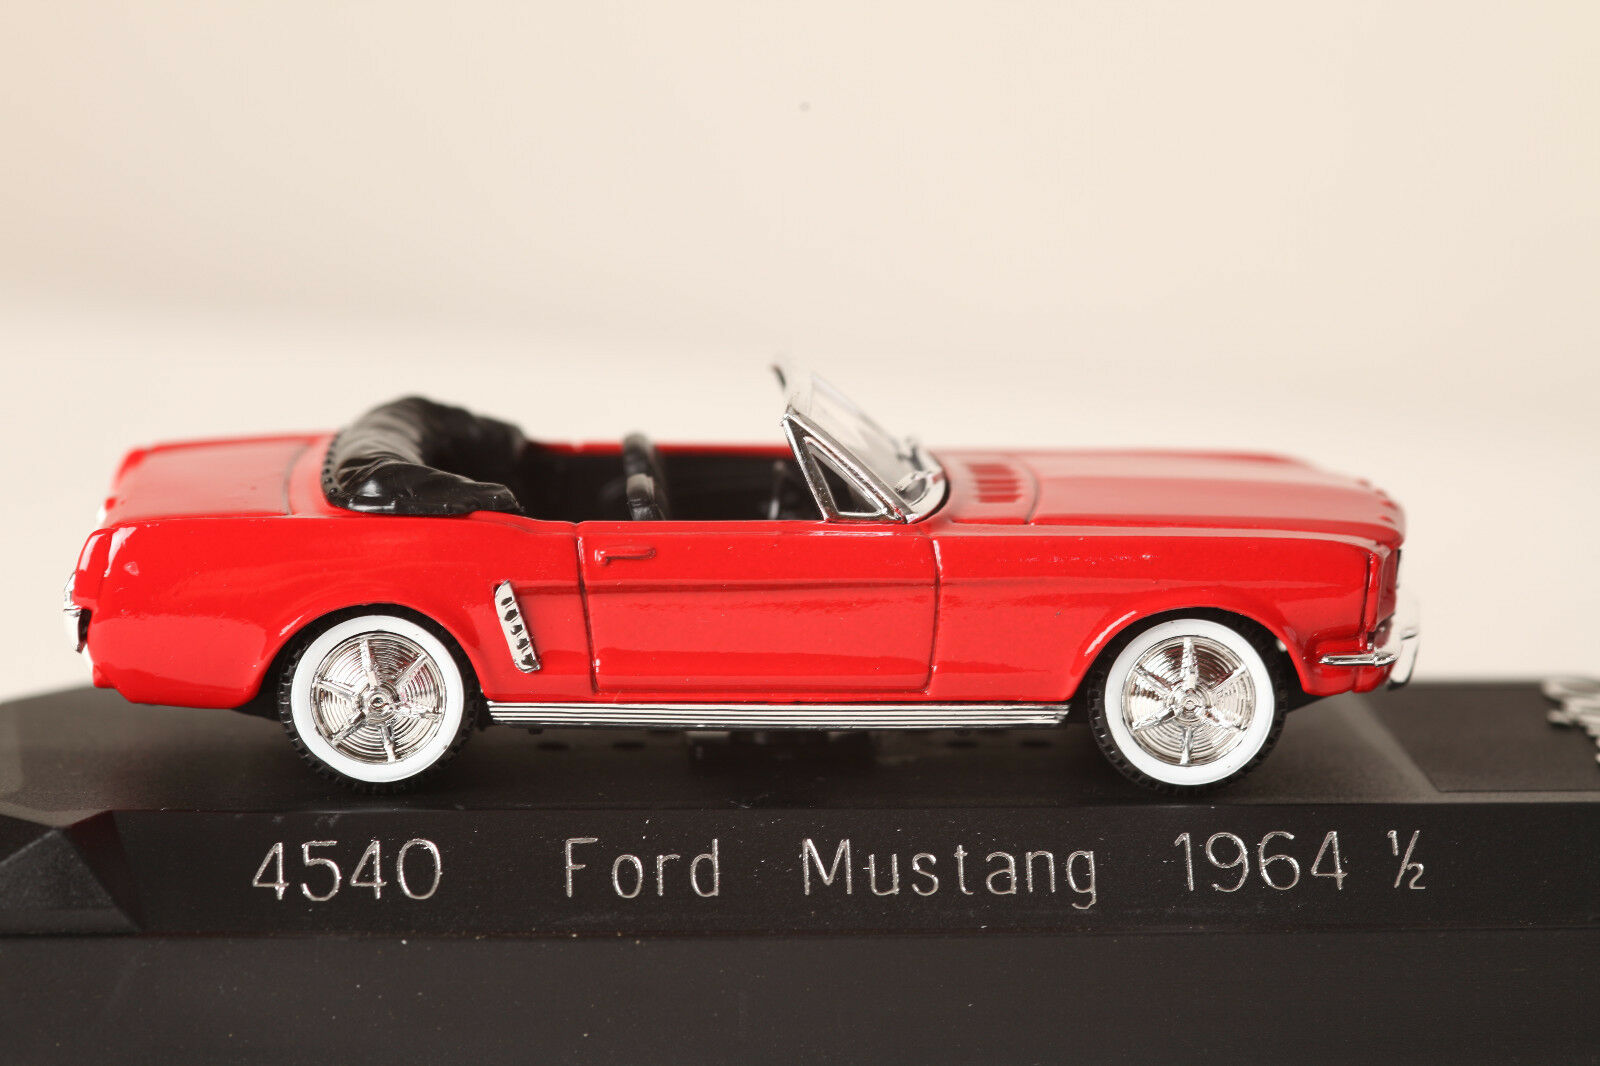 Solido 1 43 Ford Mustang Mustang Mustang 1964 1 2 4540 rot Cabrio in OVP unbespielt (36150)  | Vorzüglich  7f2d0b